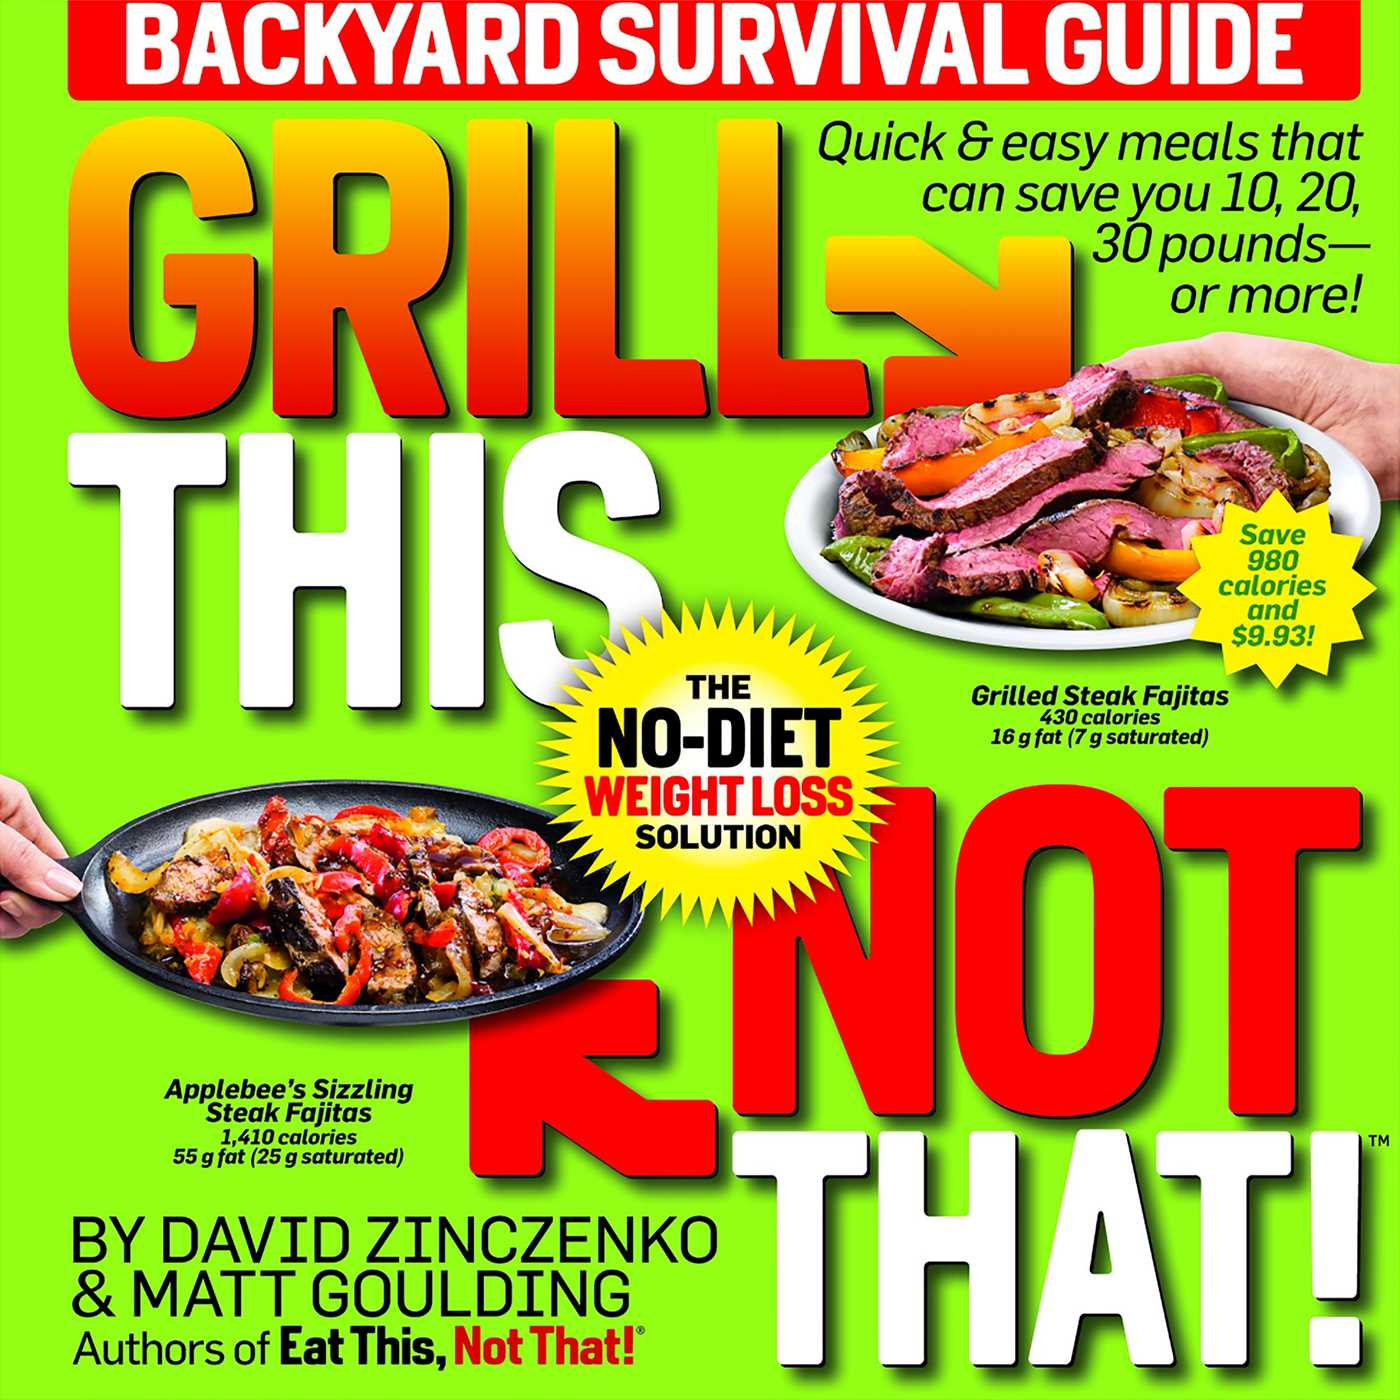 The Eat This Not That' Guide to the Keto Diet images